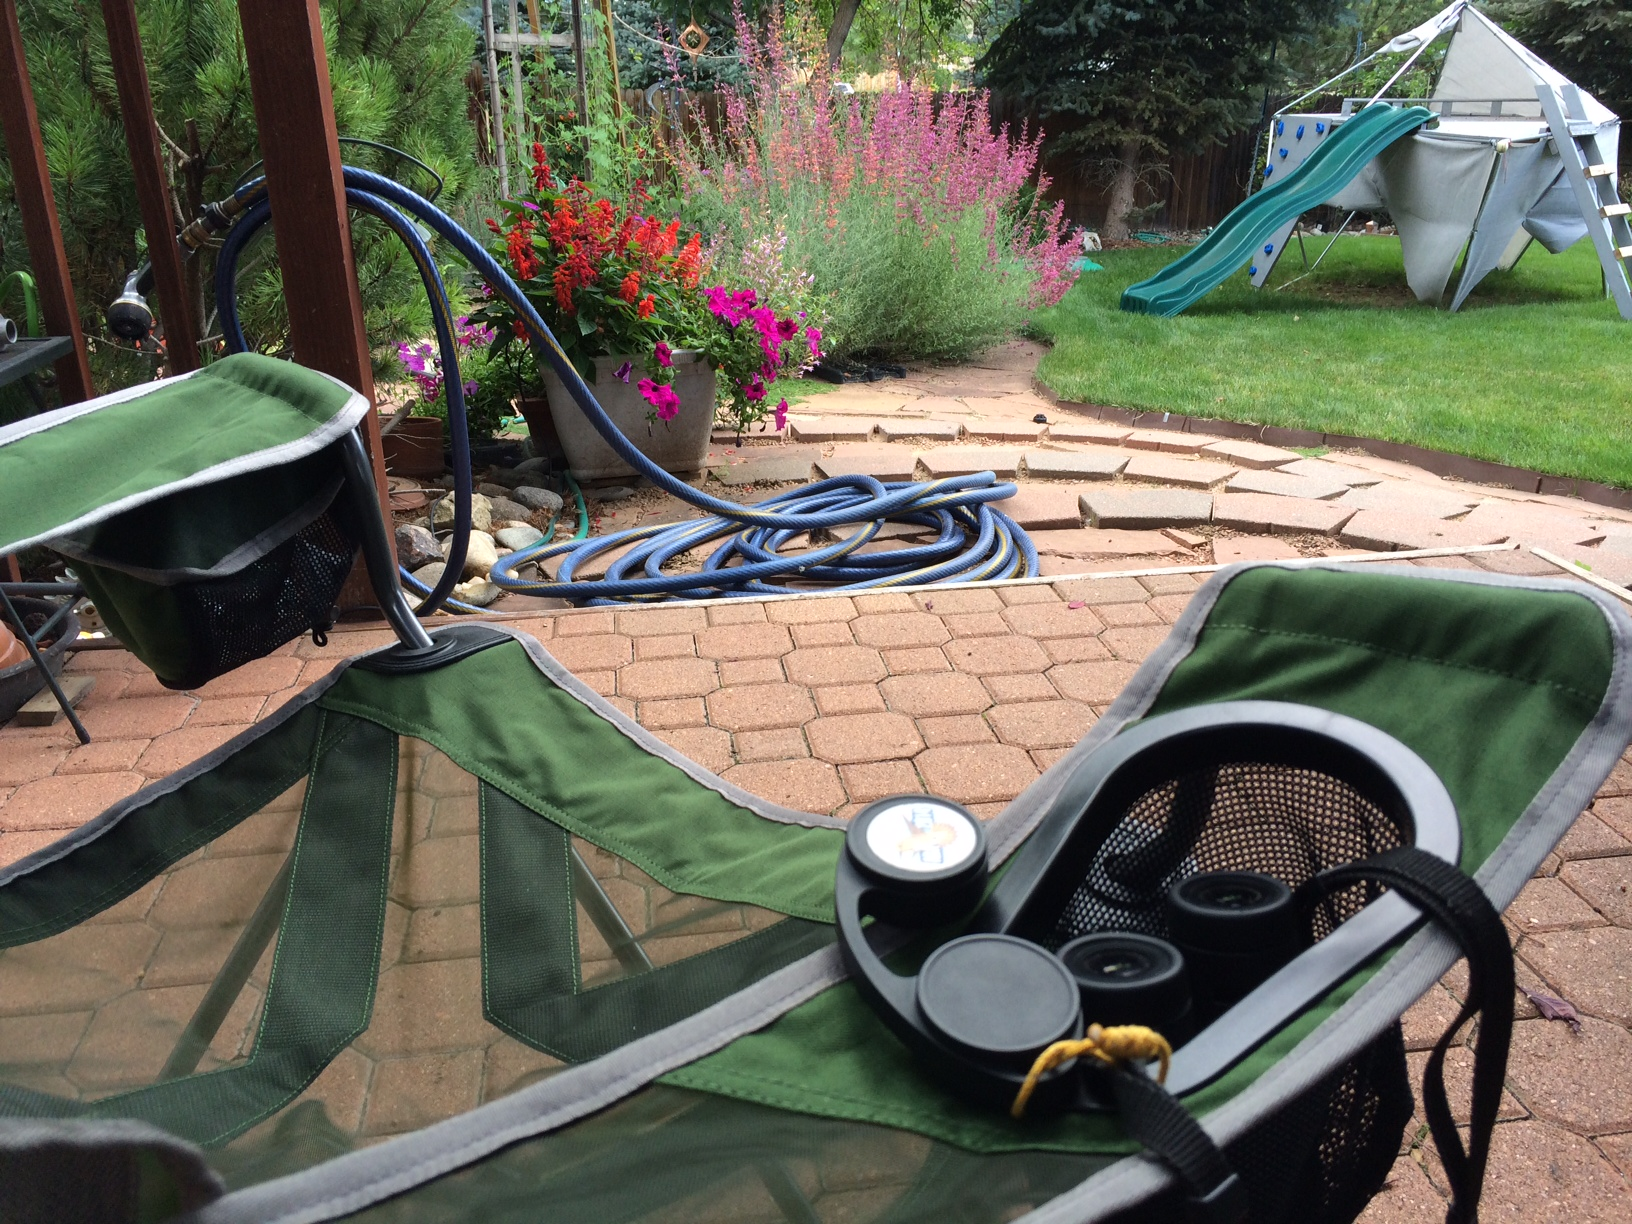 rei camp x chair blue patio cushions proudly display your duck stamp aba blog s conveniently holds a pair of full sized binoculars in its